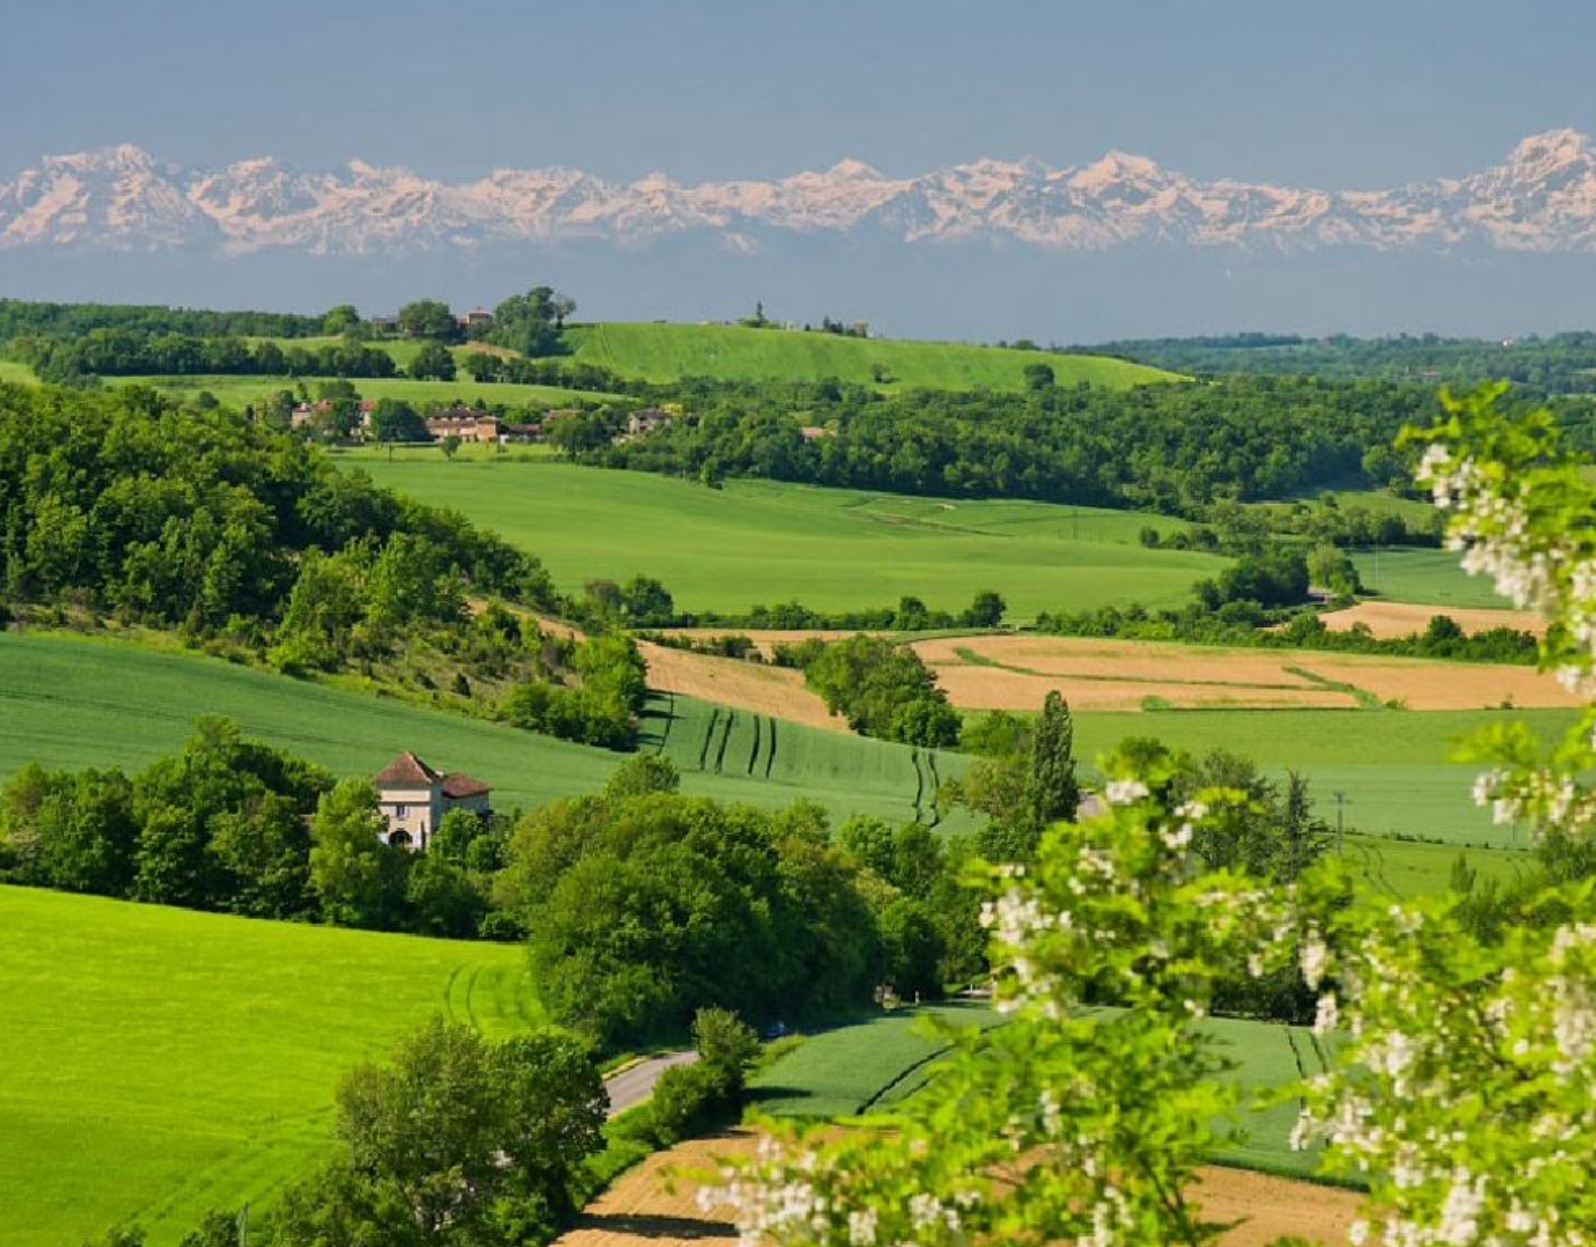 Haute-Garonne rolling hills and Pyrenees